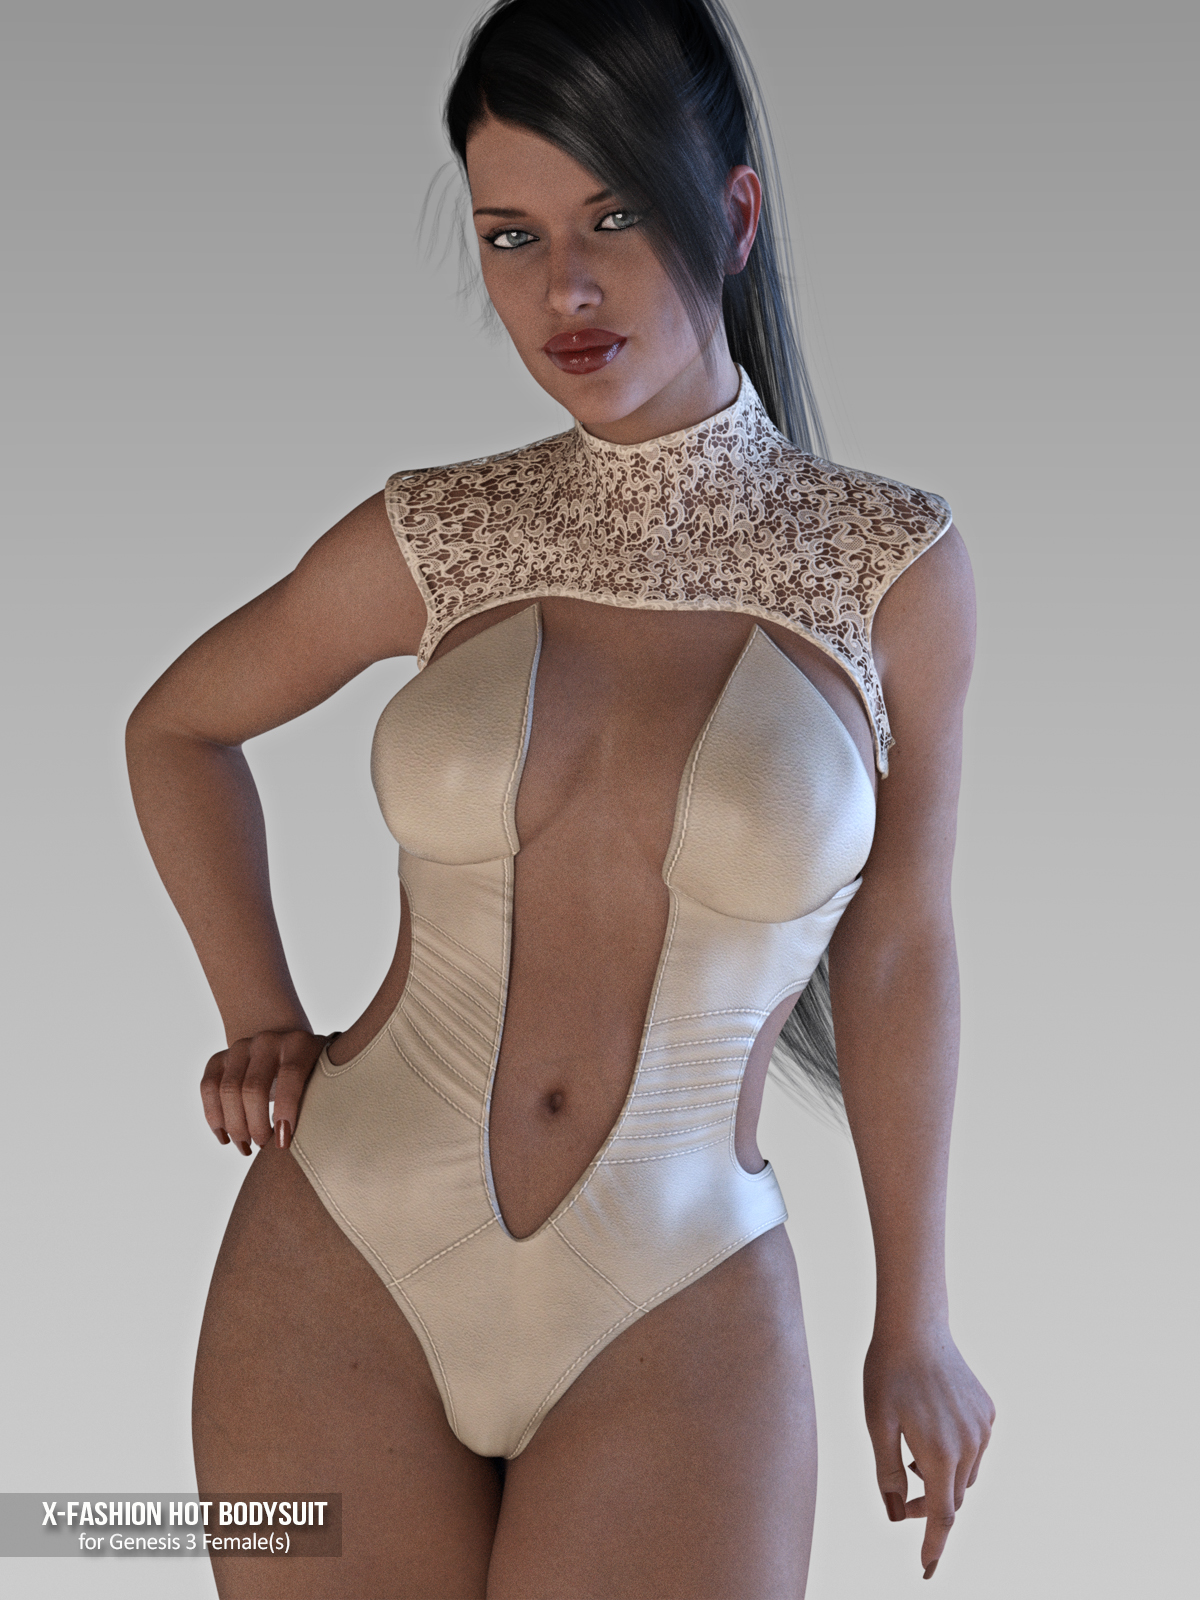 X-Fashion Hot Bodysuit for Genesis 3 Females